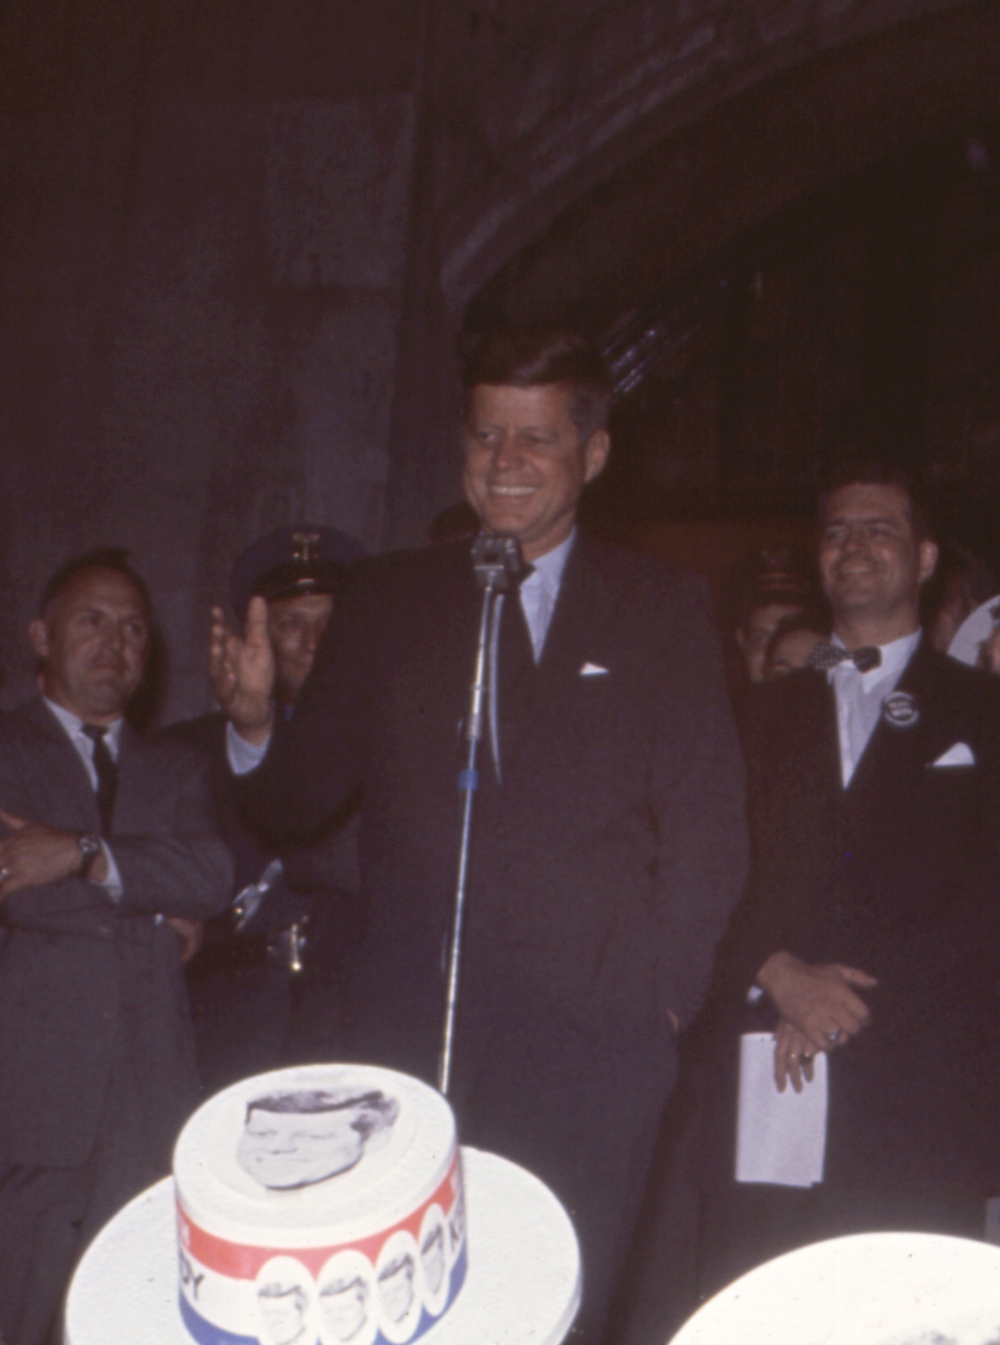 Sen. John F. Kennedy  speaks to students at the U of Michigan on a campaign stop. (Oct. 14, 1960)